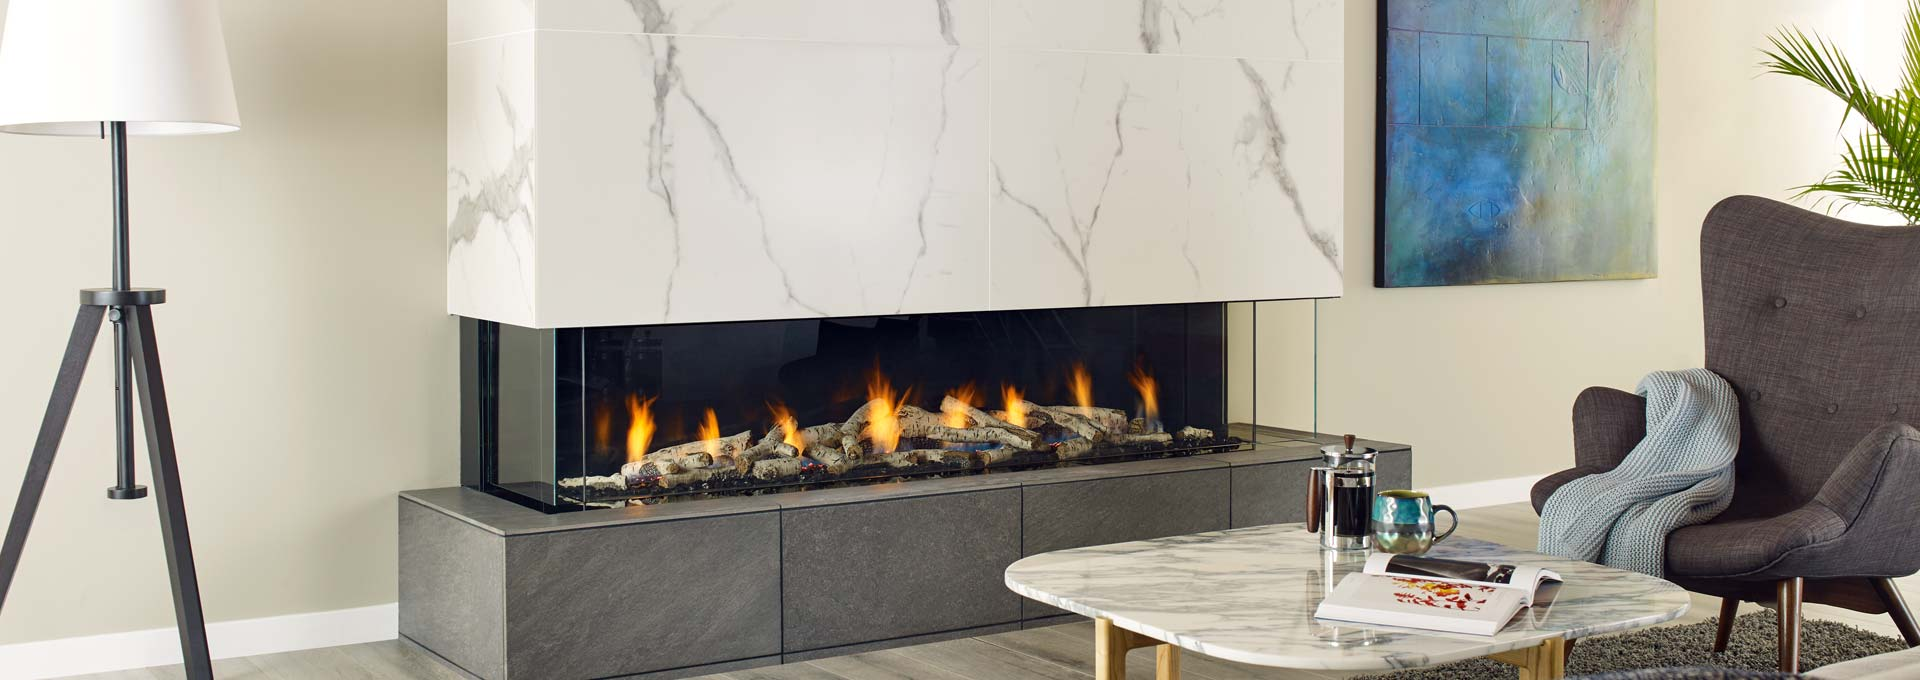 Trendiest Fireplaces of 2018 & 2019